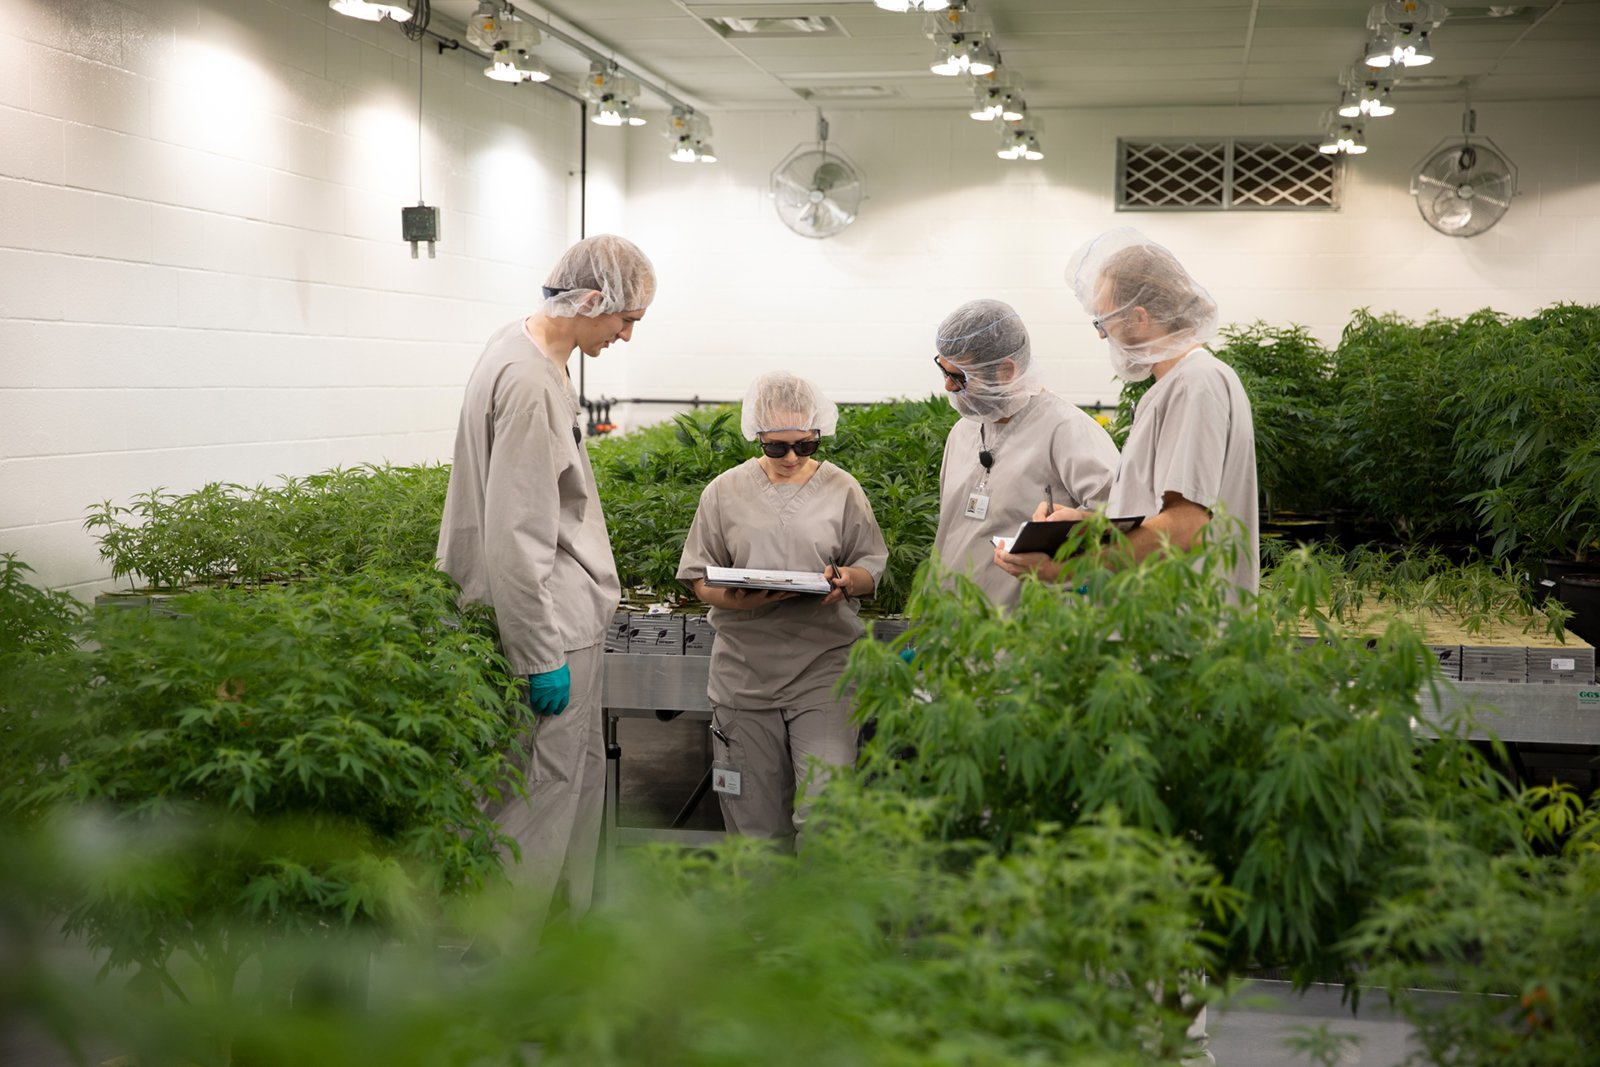 Group collaborating at growing facility - All images are from JC Green Inc featuring cannabis cultivated in Thorndale, Ontario using next-generation growing techniques and specializing in small-batch craft grown cannabis.